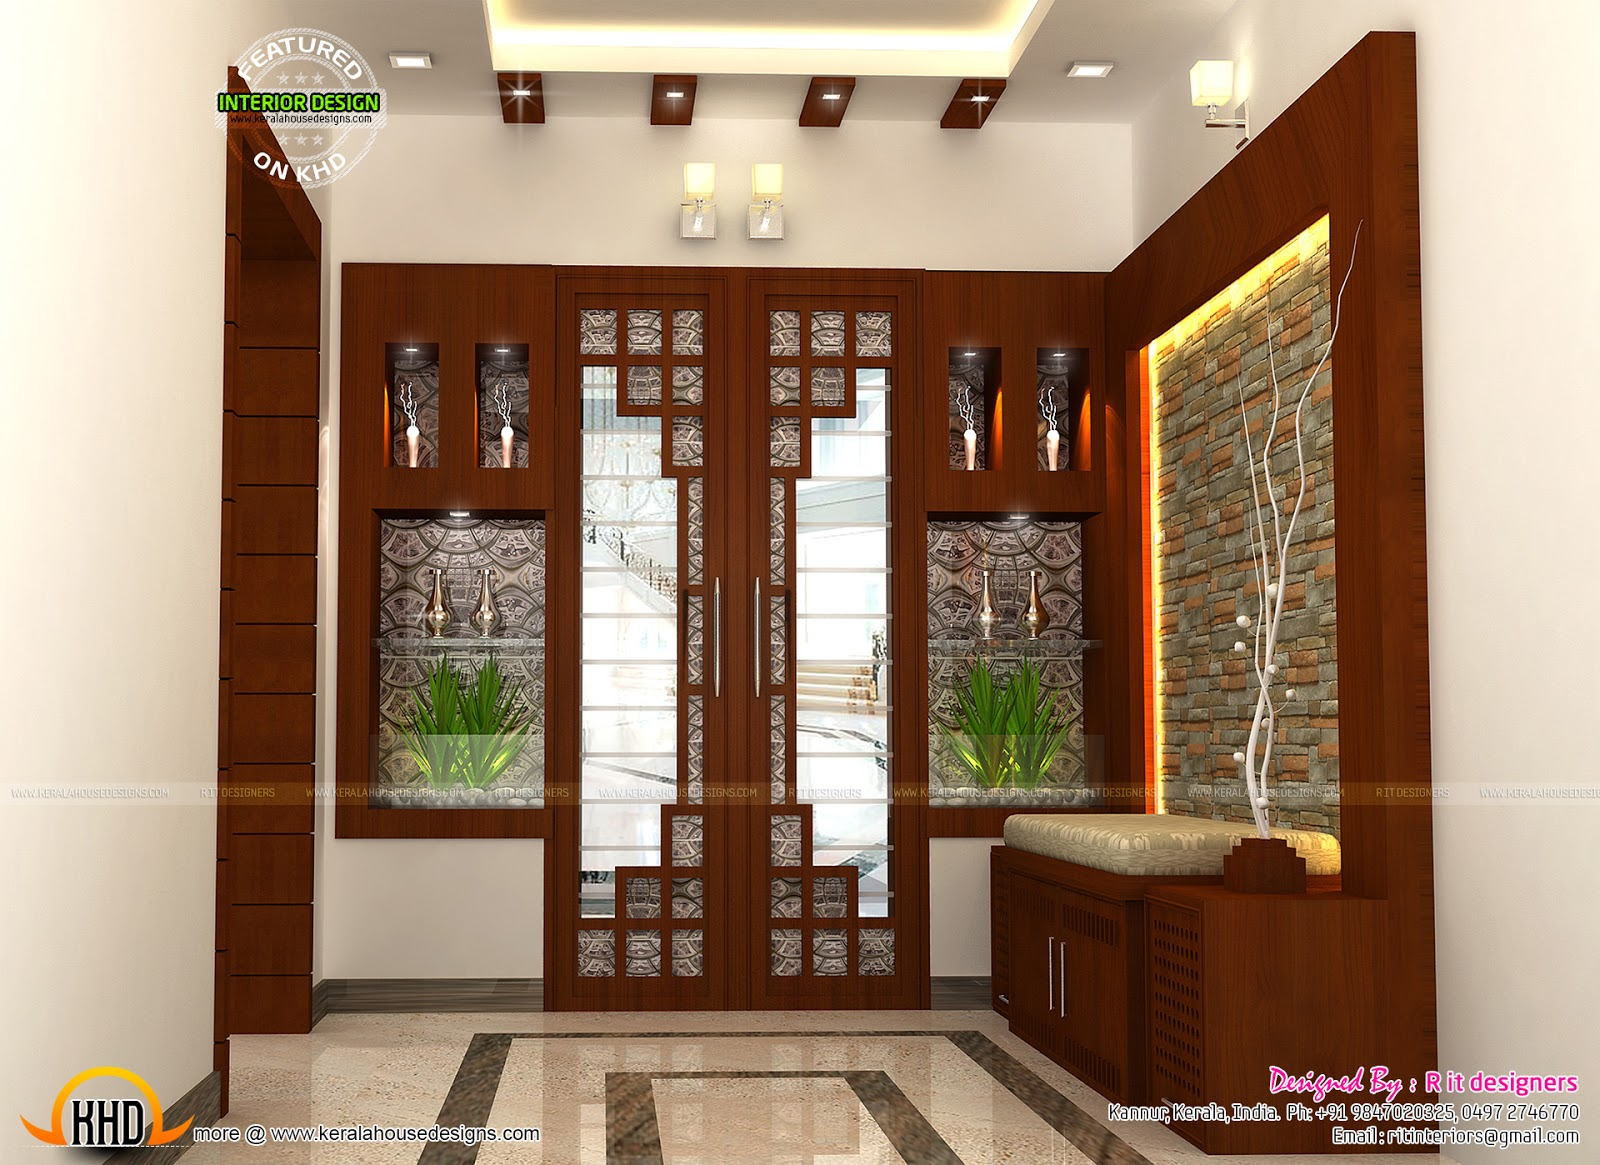 Interior decors by r it designers kerala home design and for New home interior design